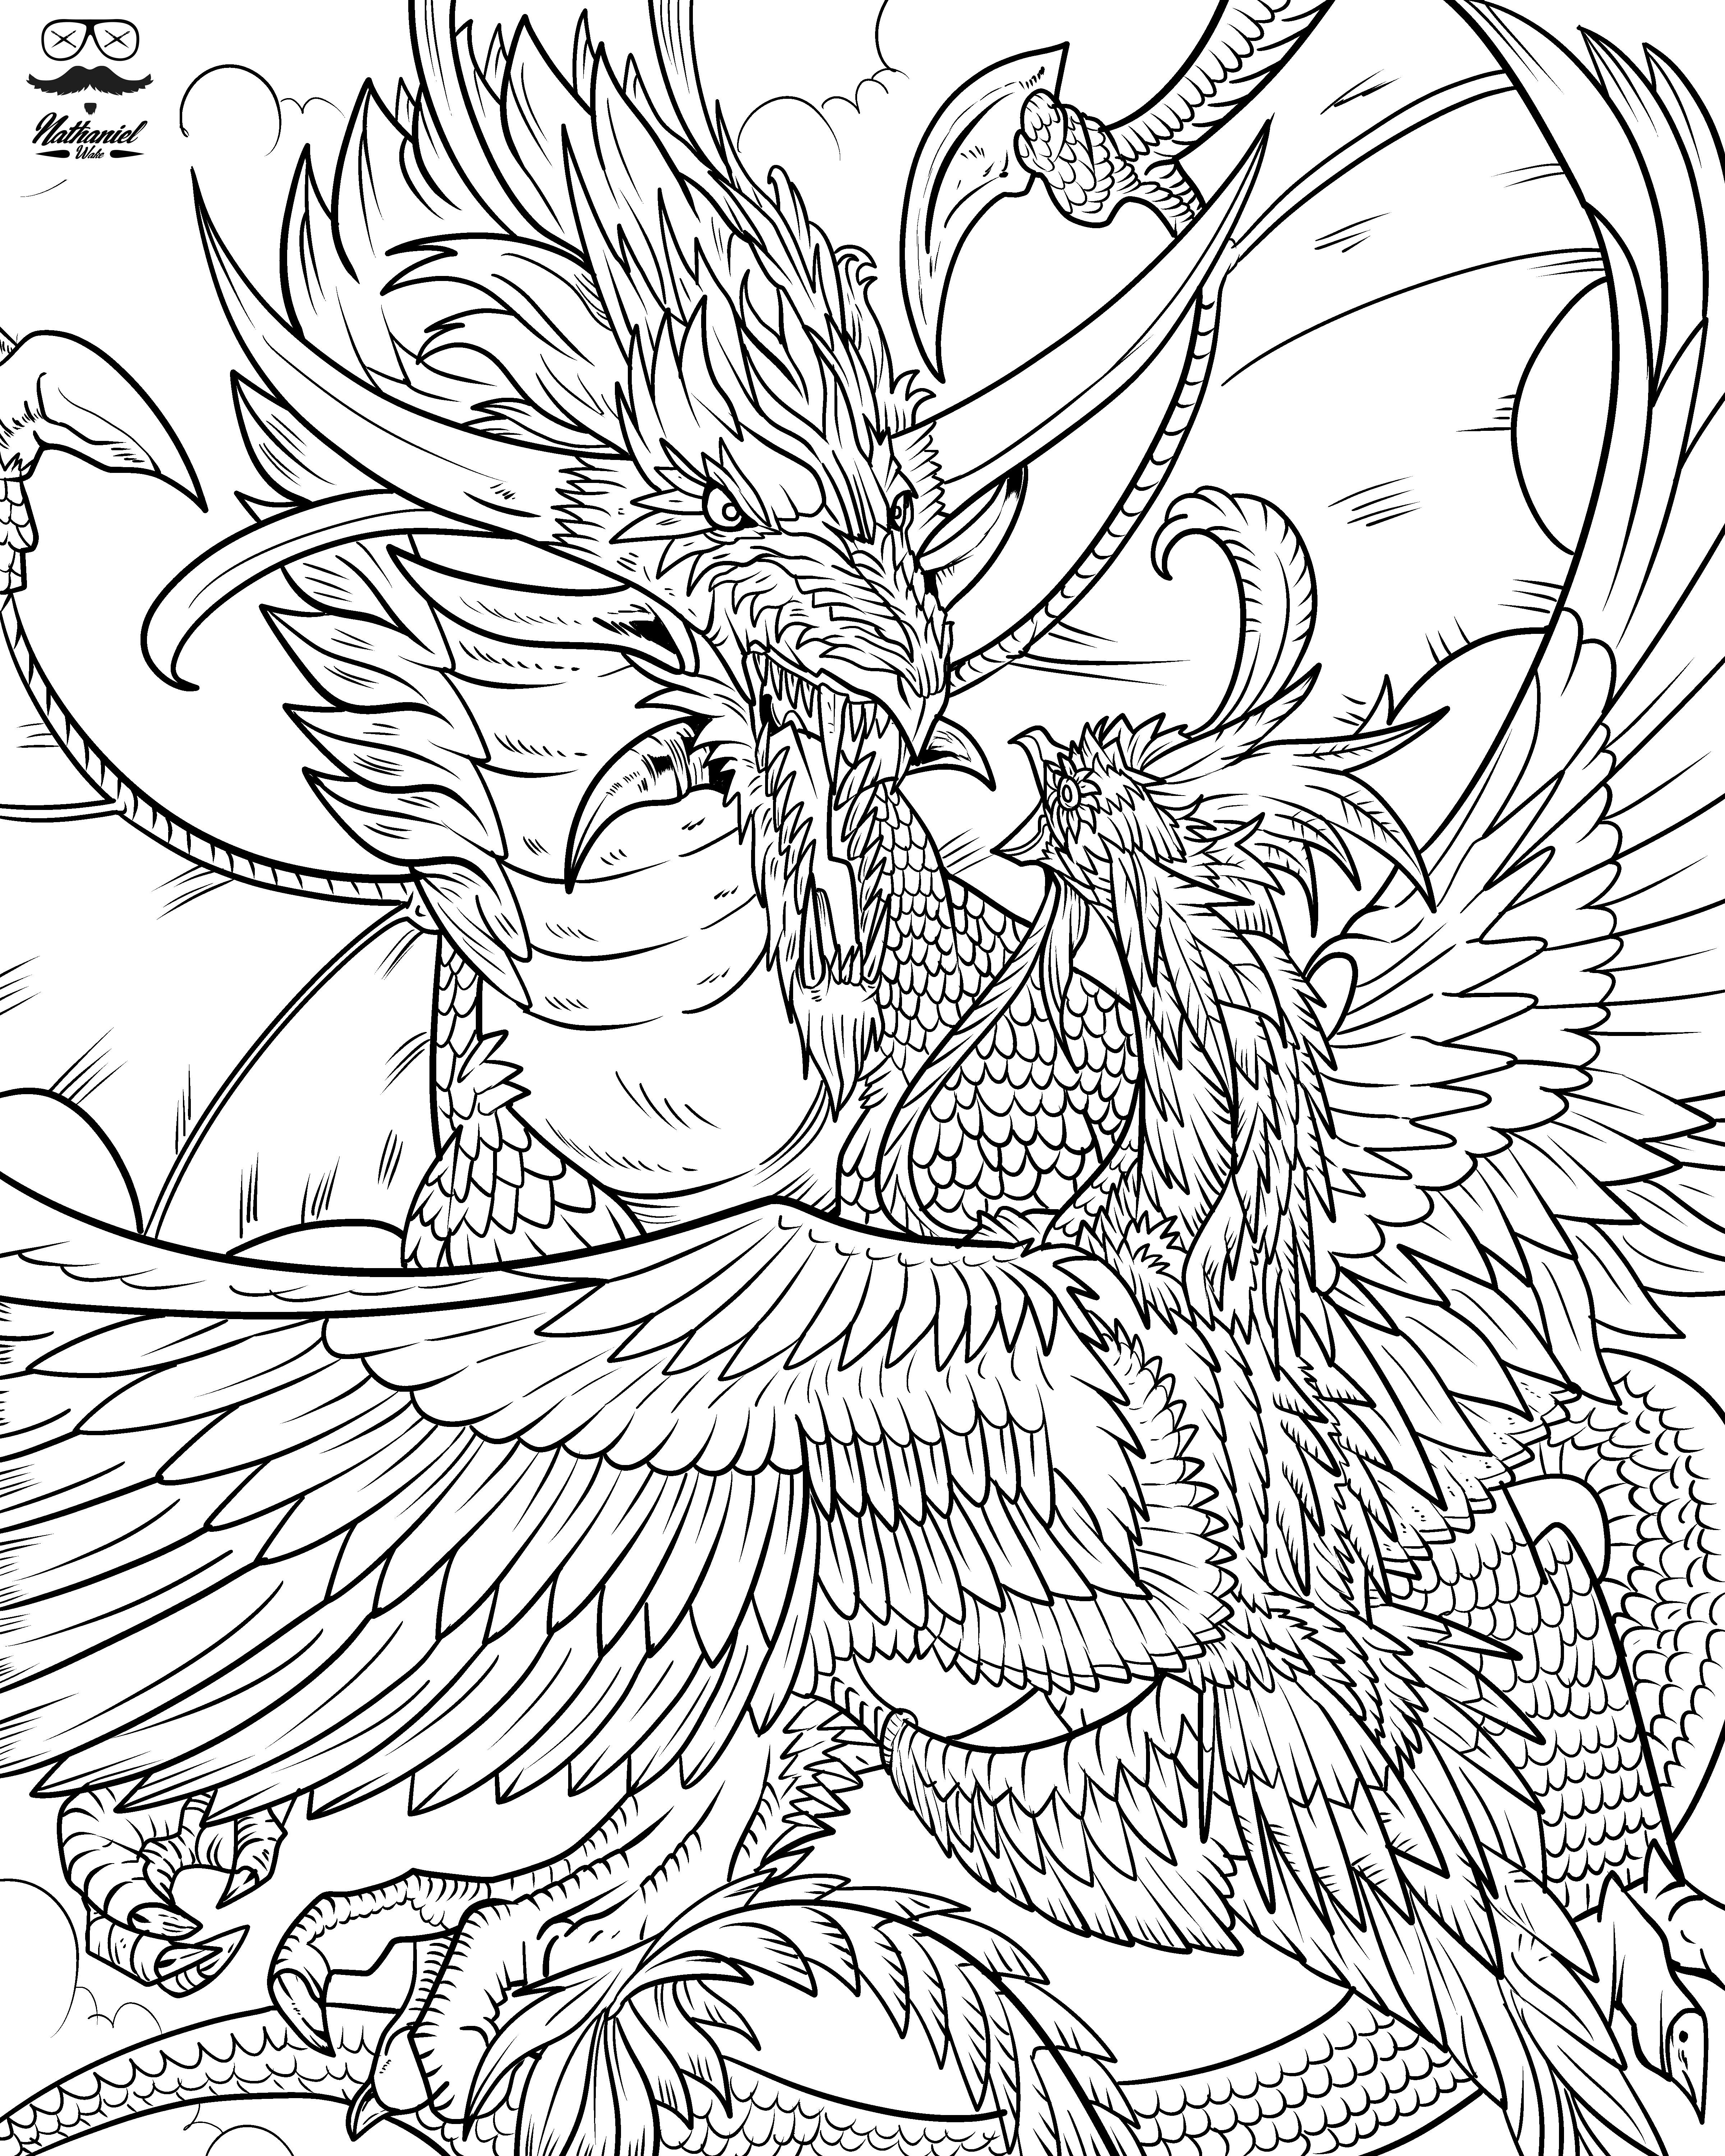 From Nathaniel Wakes Wakes Adult Coloring book, Dragon